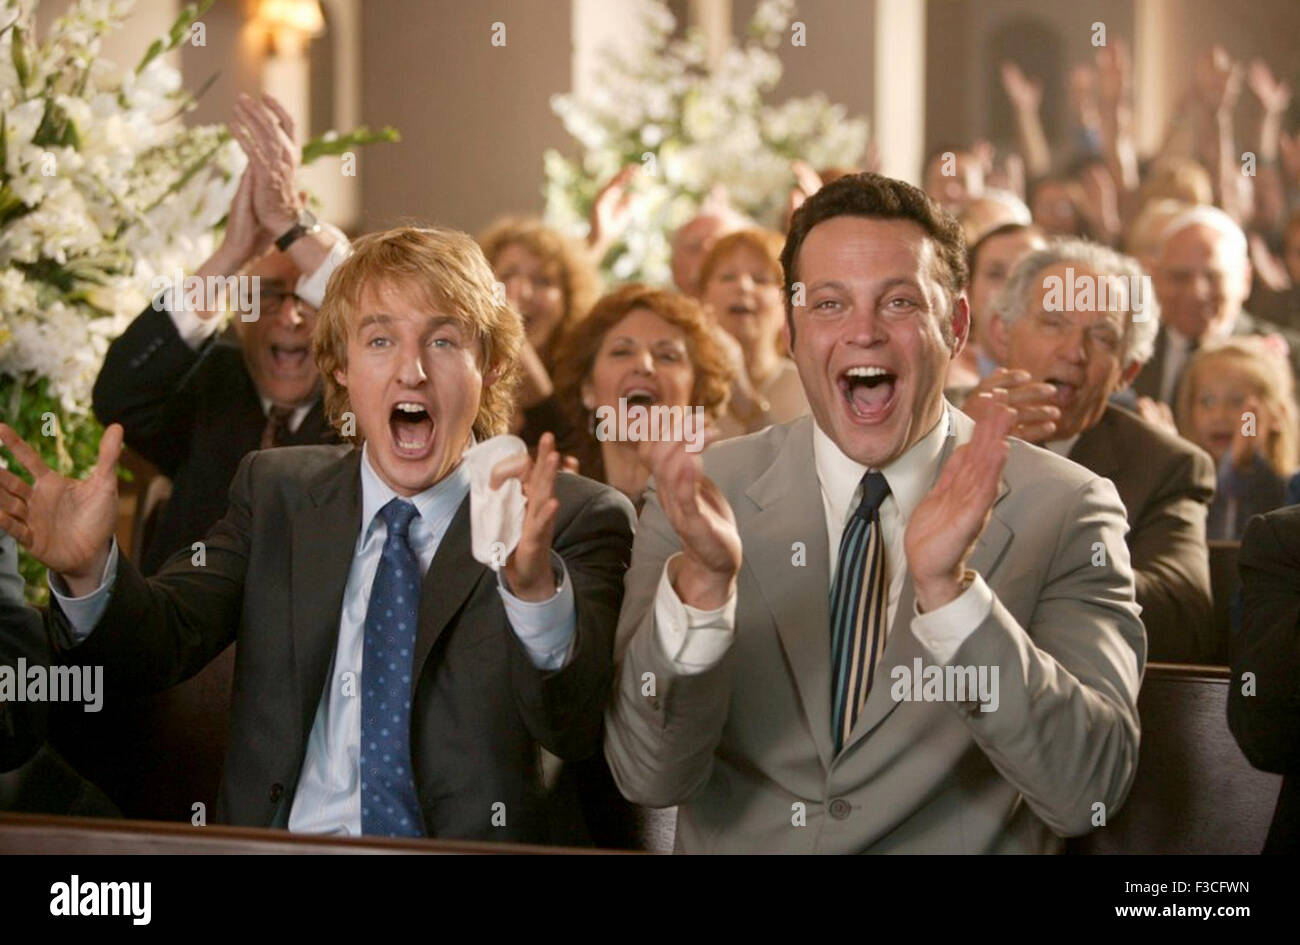 WEDDING CRASHERS 2005 New Line Cinema film with Vince Vaughn at right and Owen Wilson - Stock Image